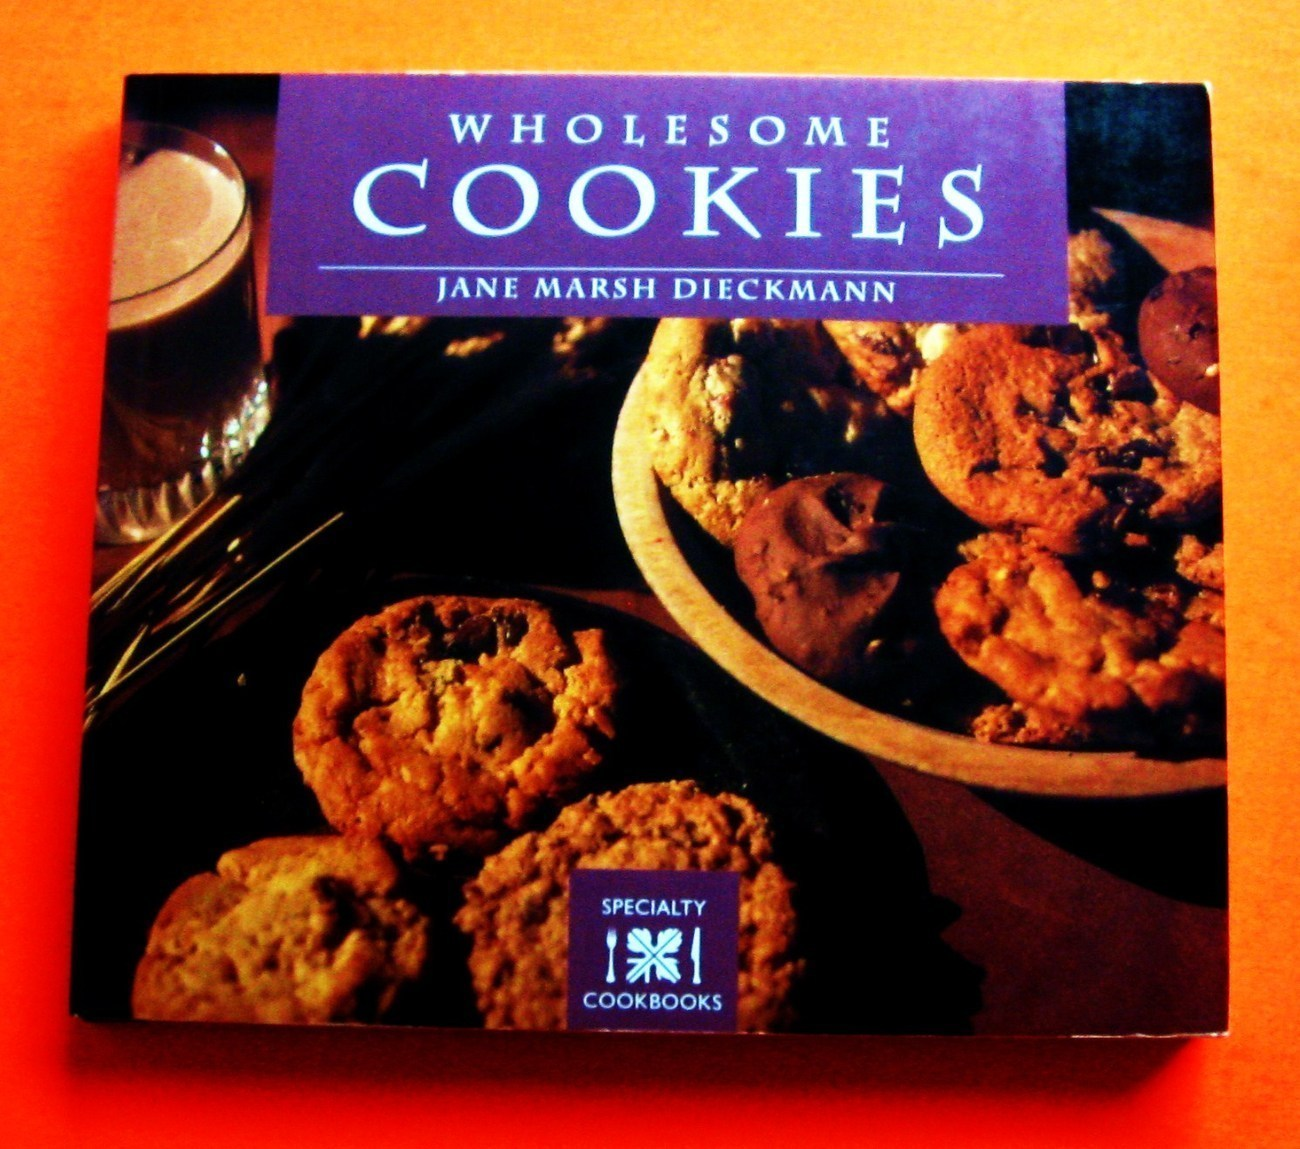 Wholesome Cookies specialty natural healthy how to cook guide book Dieckmann